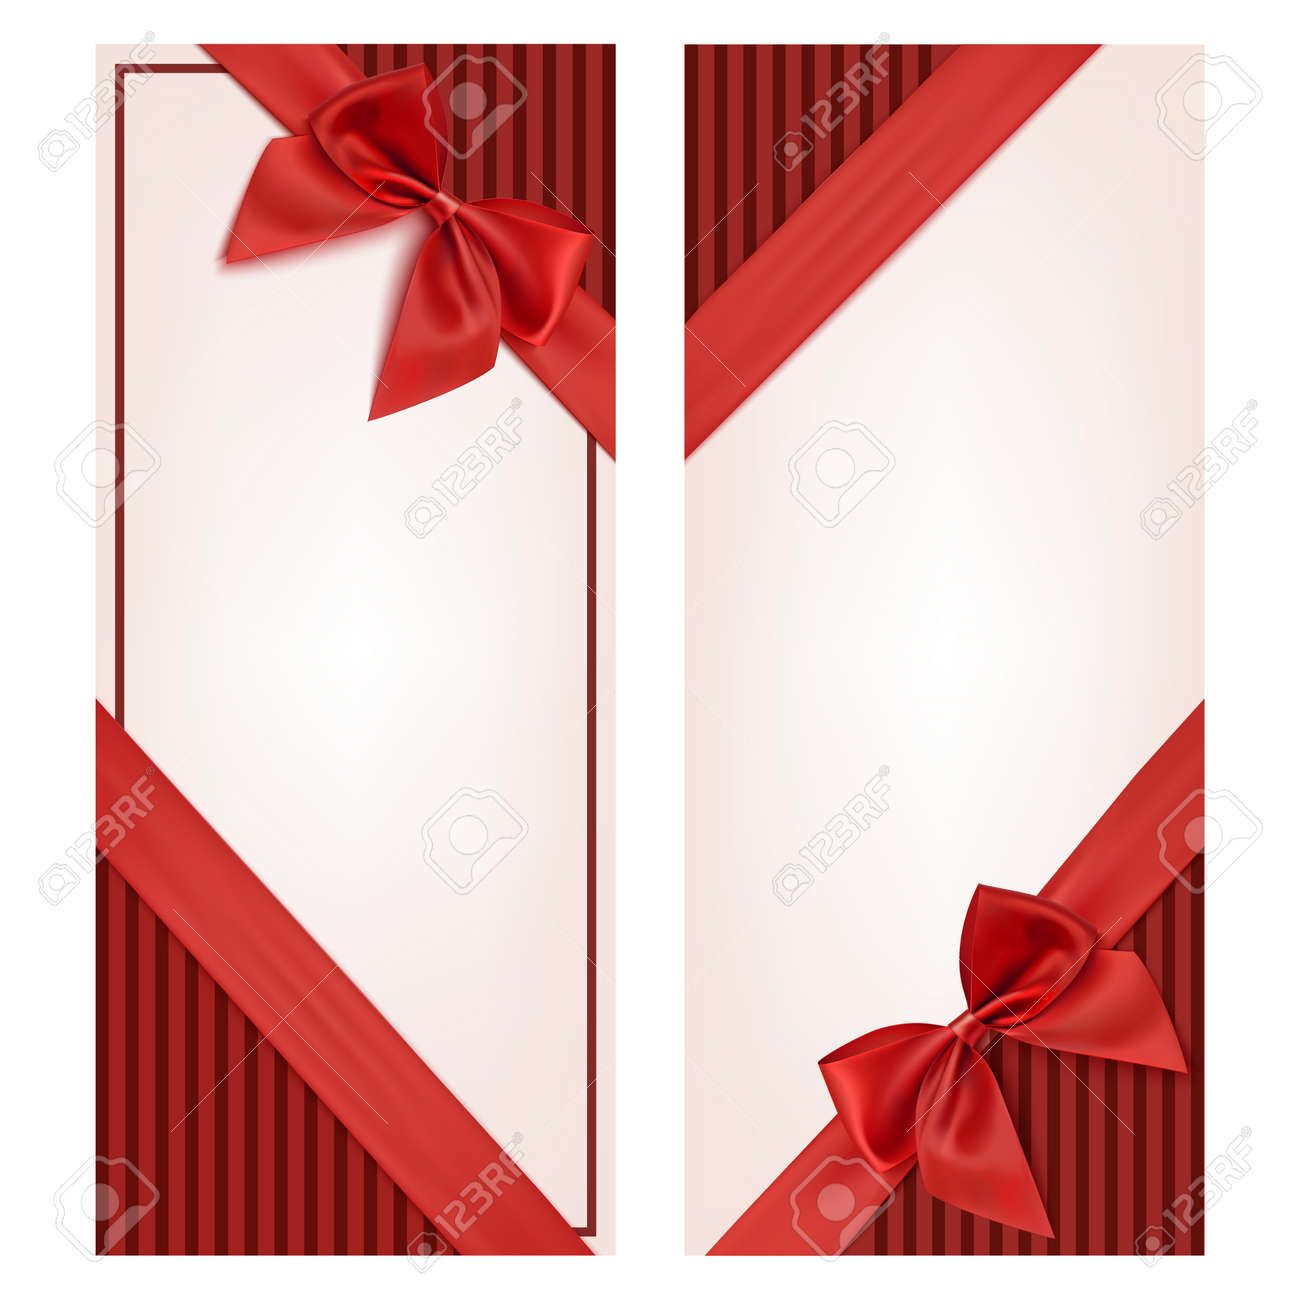 gift card red ribbon and a bow gift voucher template vector gift card red ribbon and a bow gift voucher template vector illustration stock